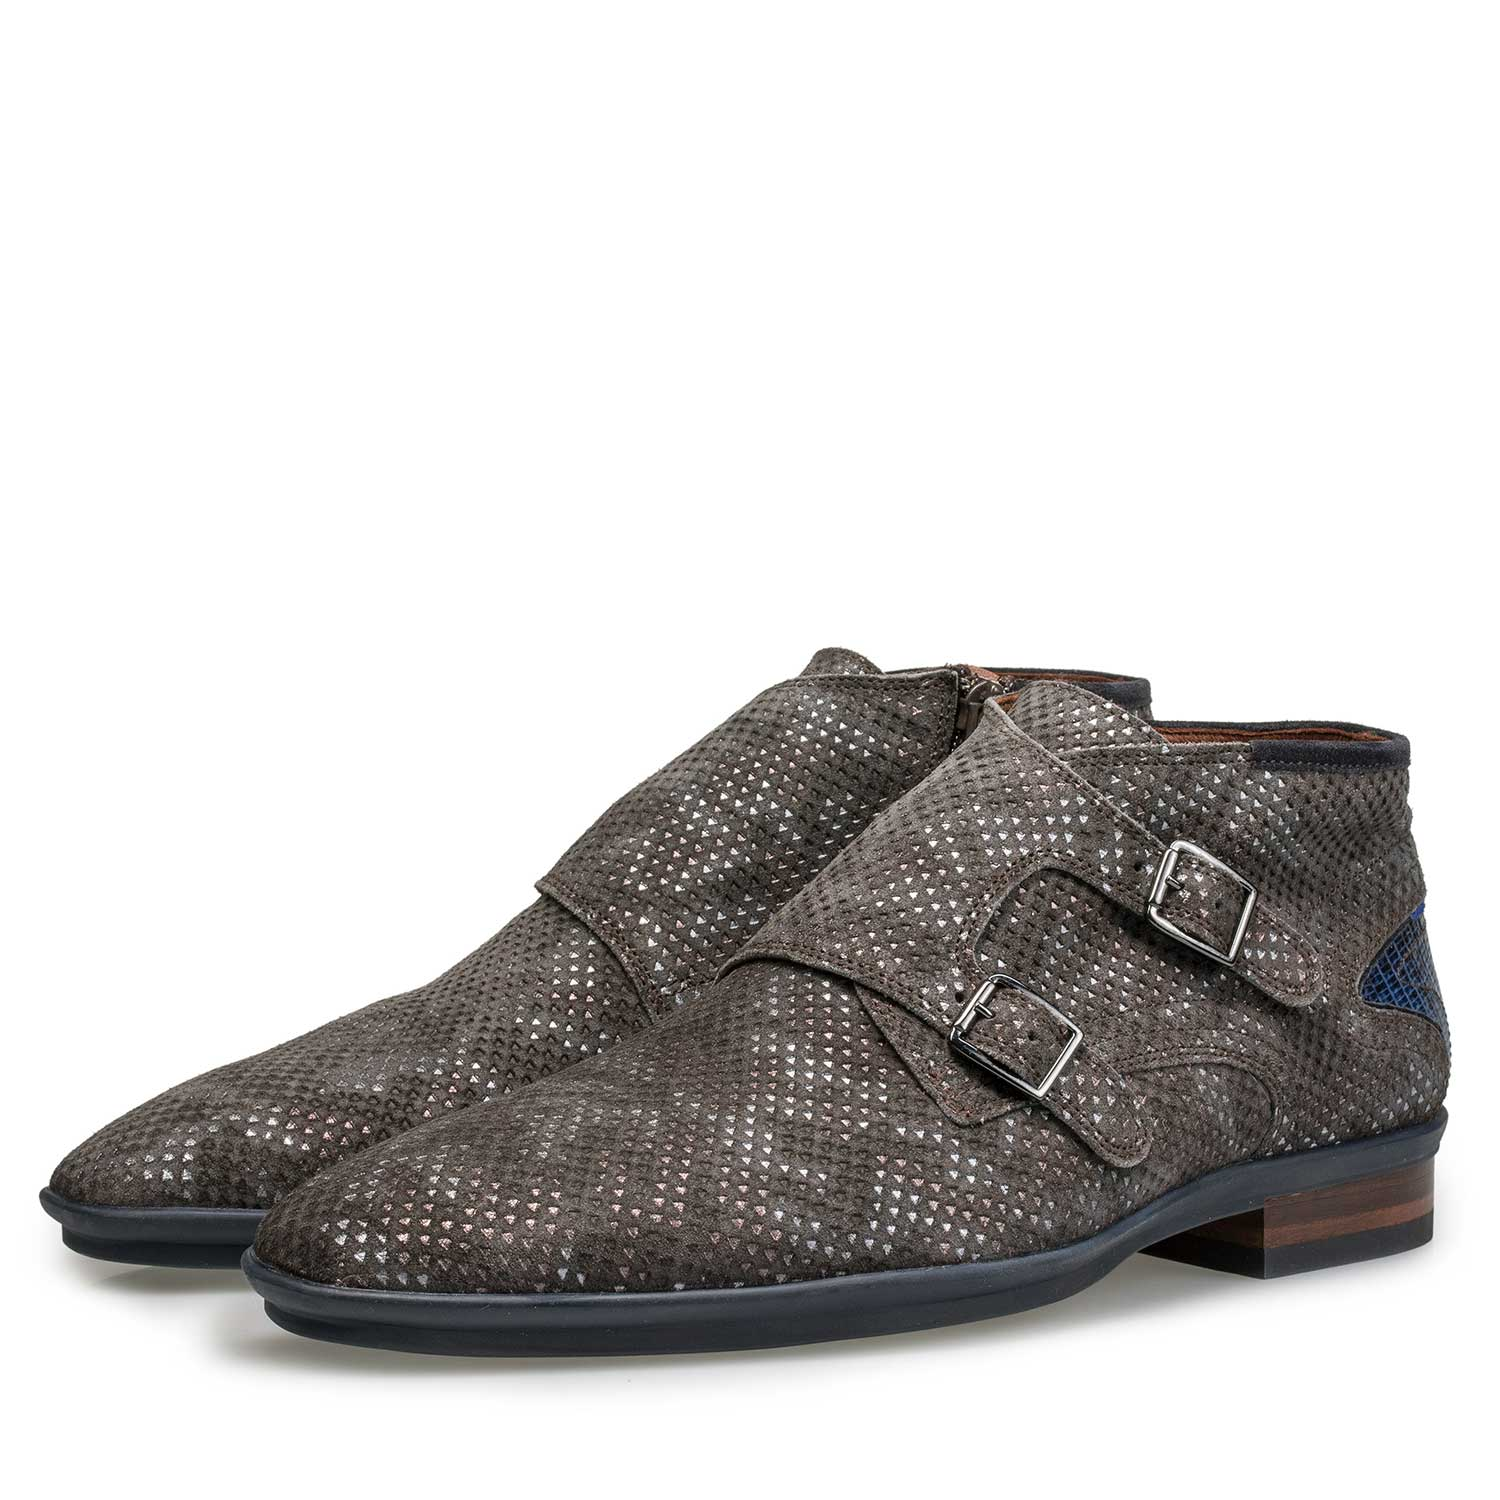 10137/04 - Mid-high brown patterned buckled shoe